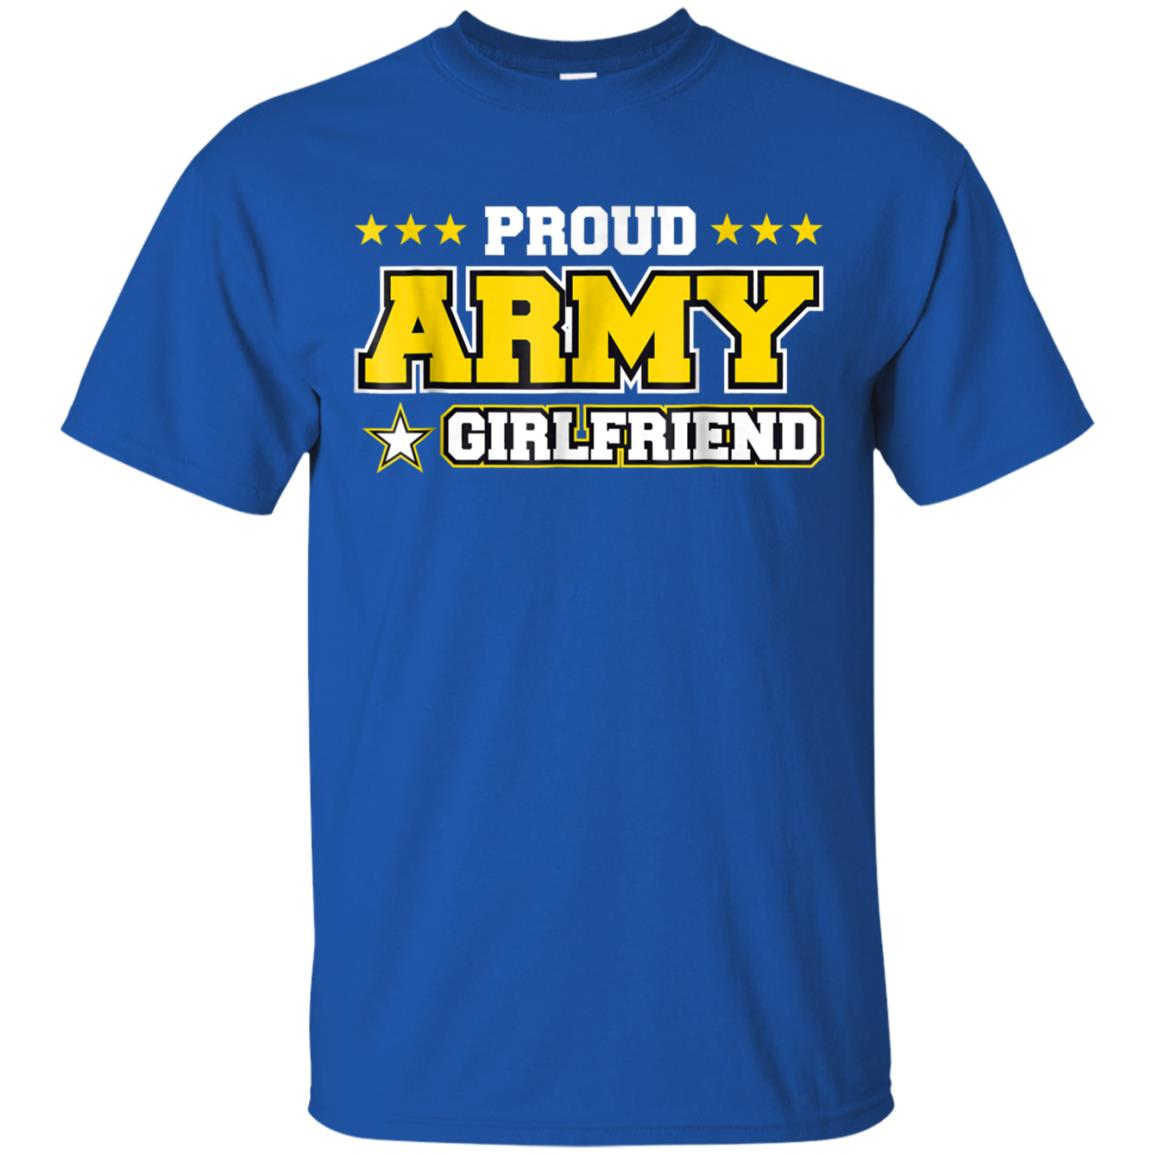 3cef6fc2 Awesome proud army girlfriend t shirt us military girlfriend family ...